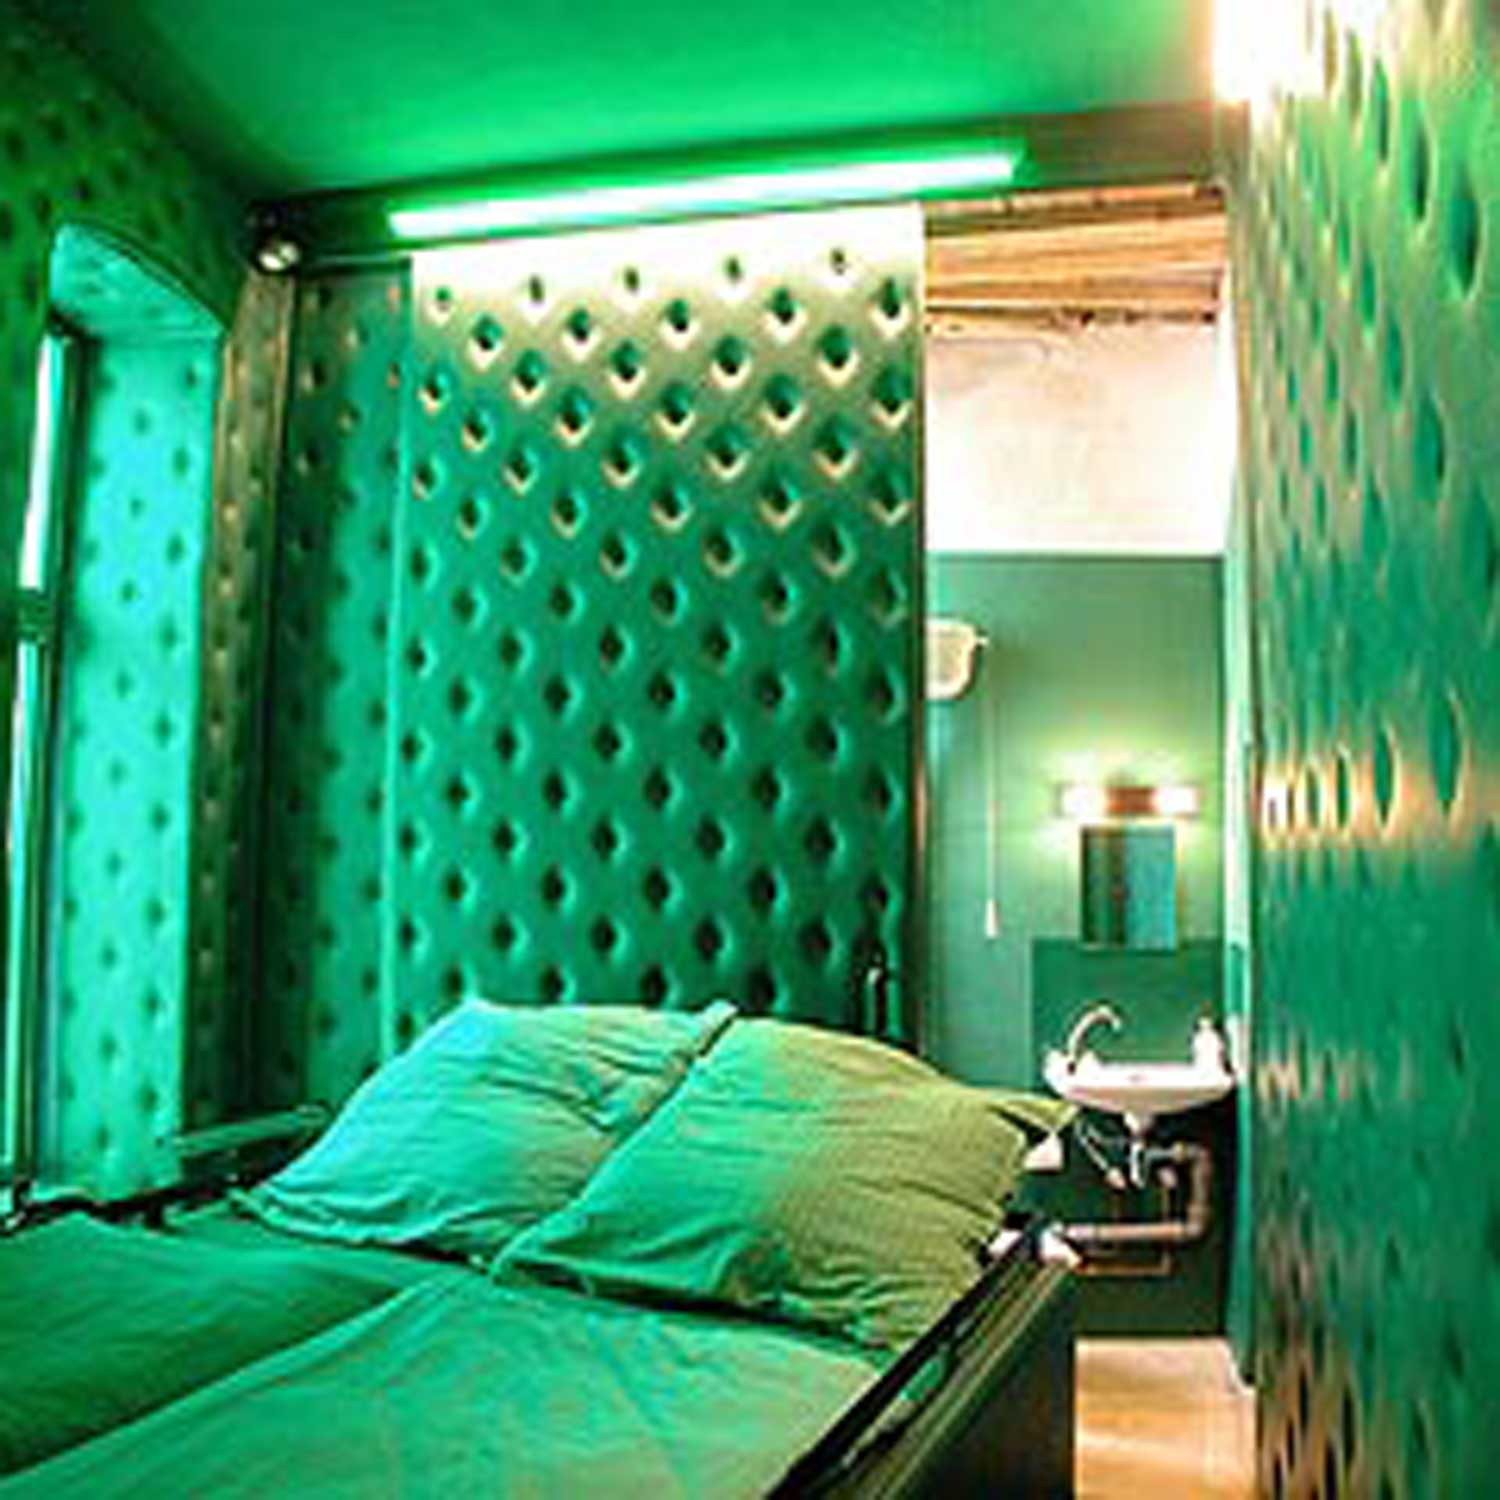 how to make a padded cell